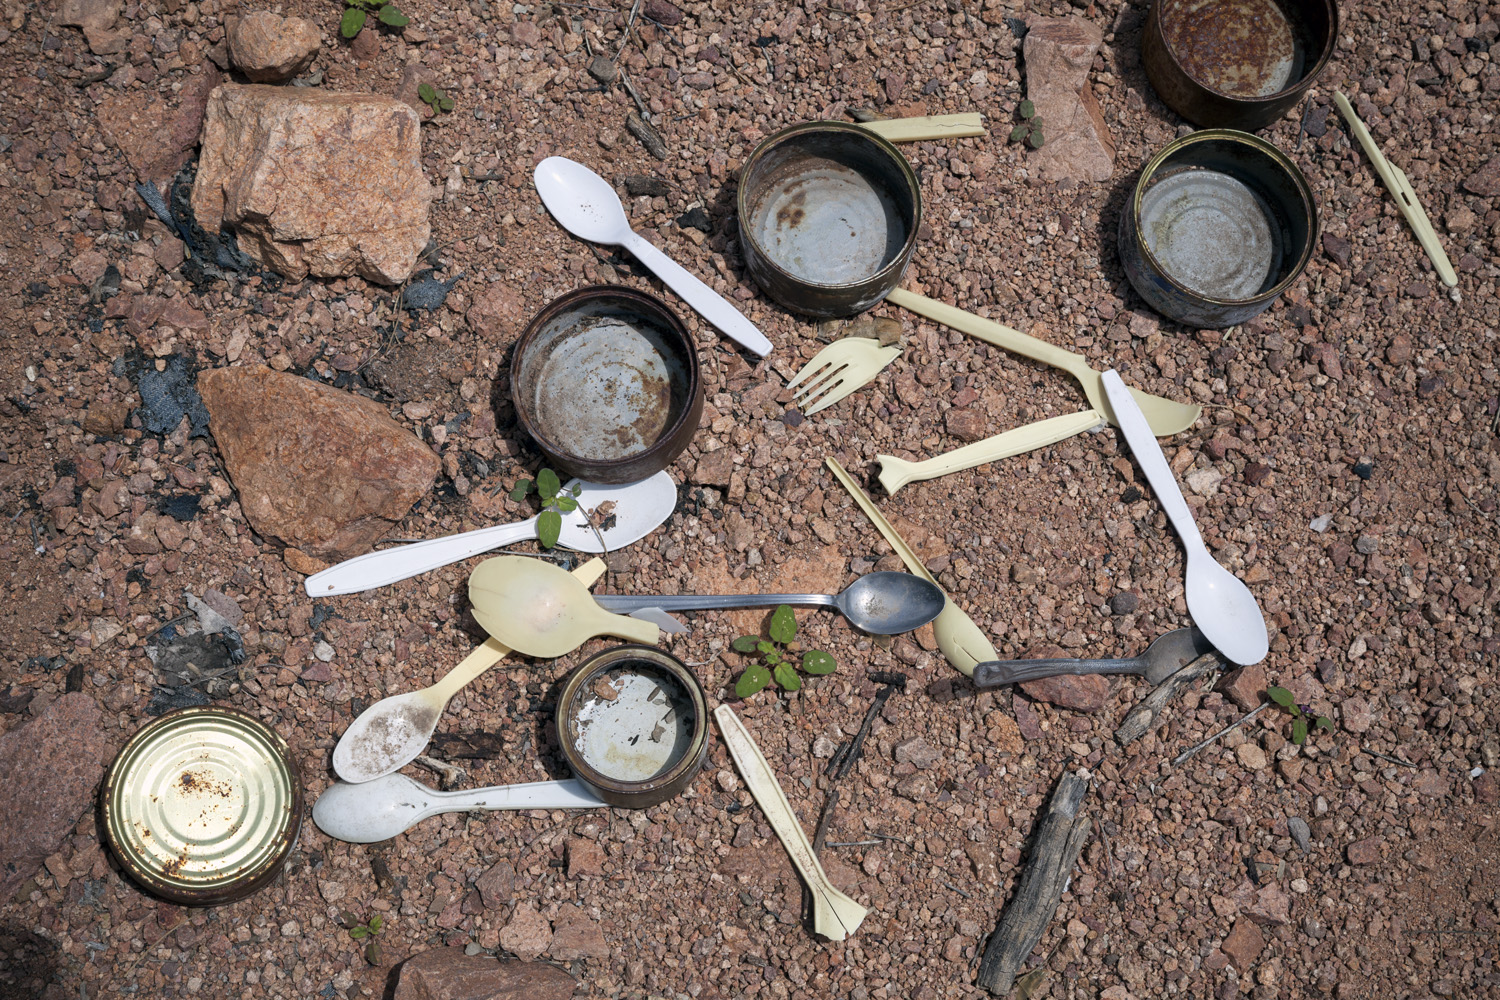 Empty Cans and Utensils Left By Migrants, 2012